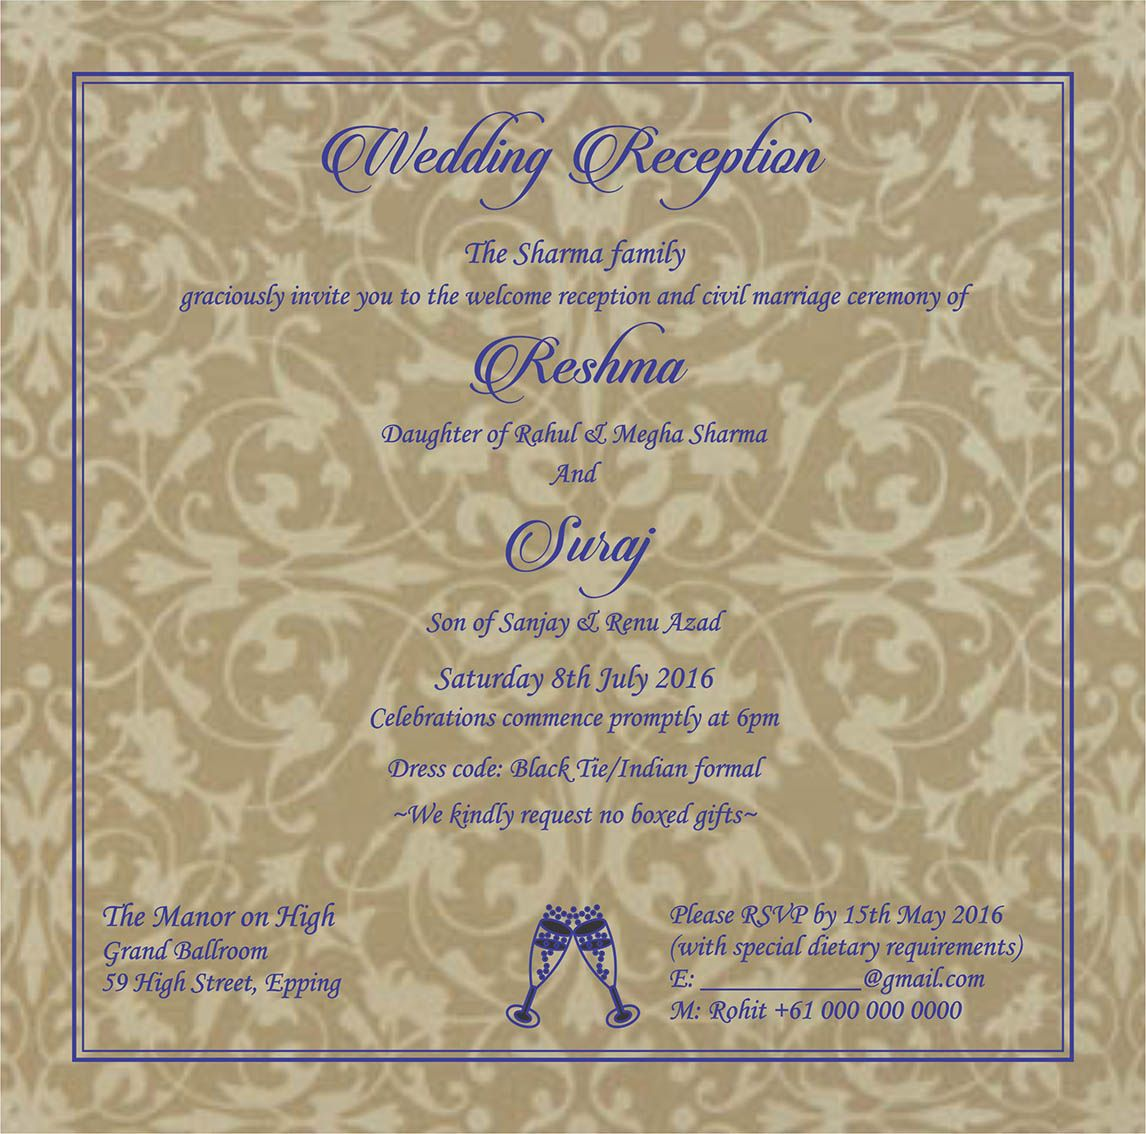 Wedding Invitation Wording For Reception Ceremony (With